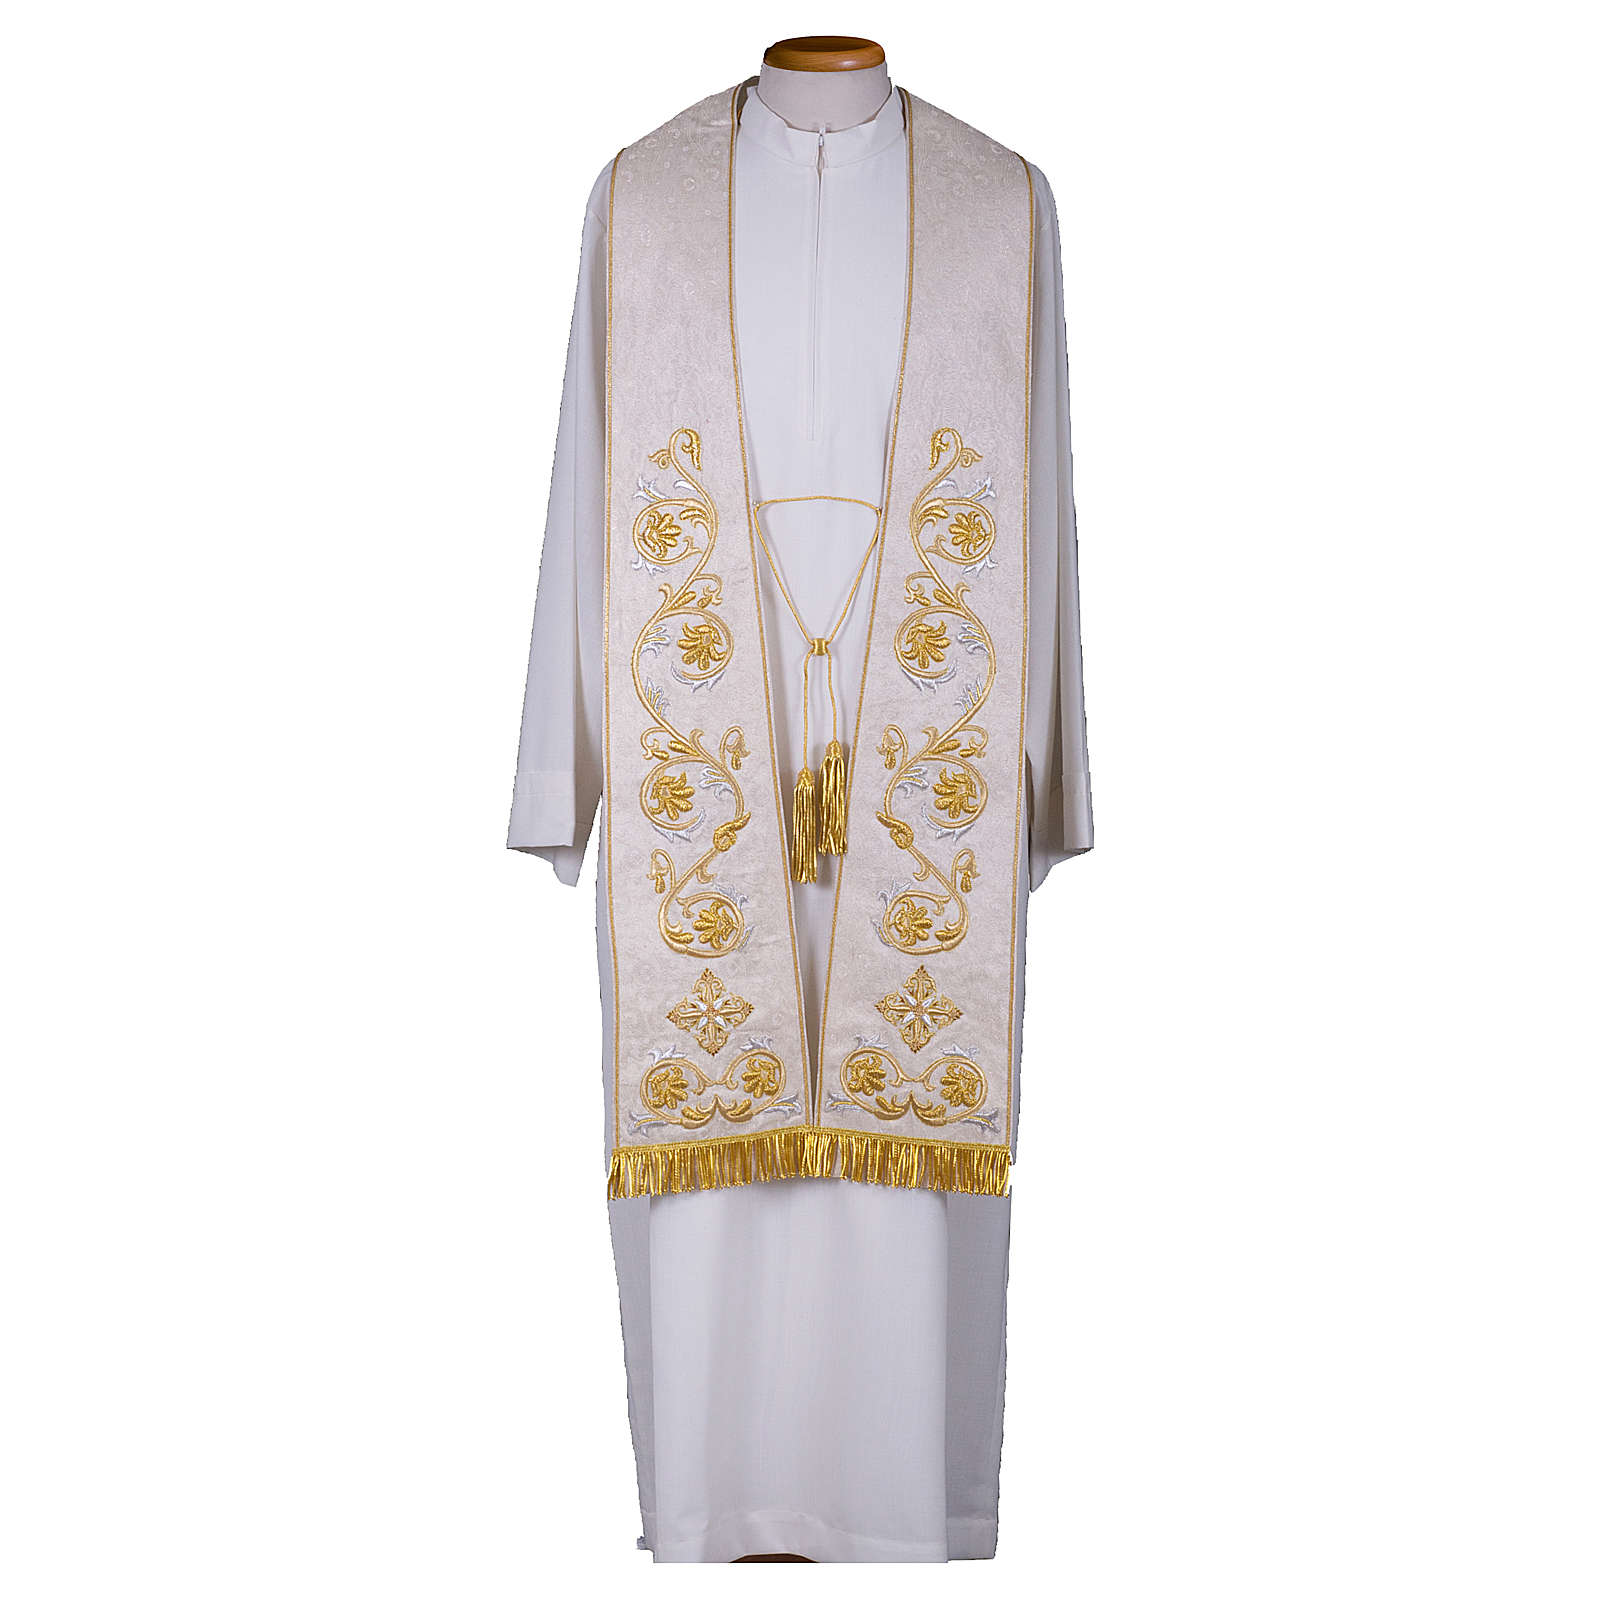 Clergy Stole in pure silk with fringe and tassels, hand-embroidered 4